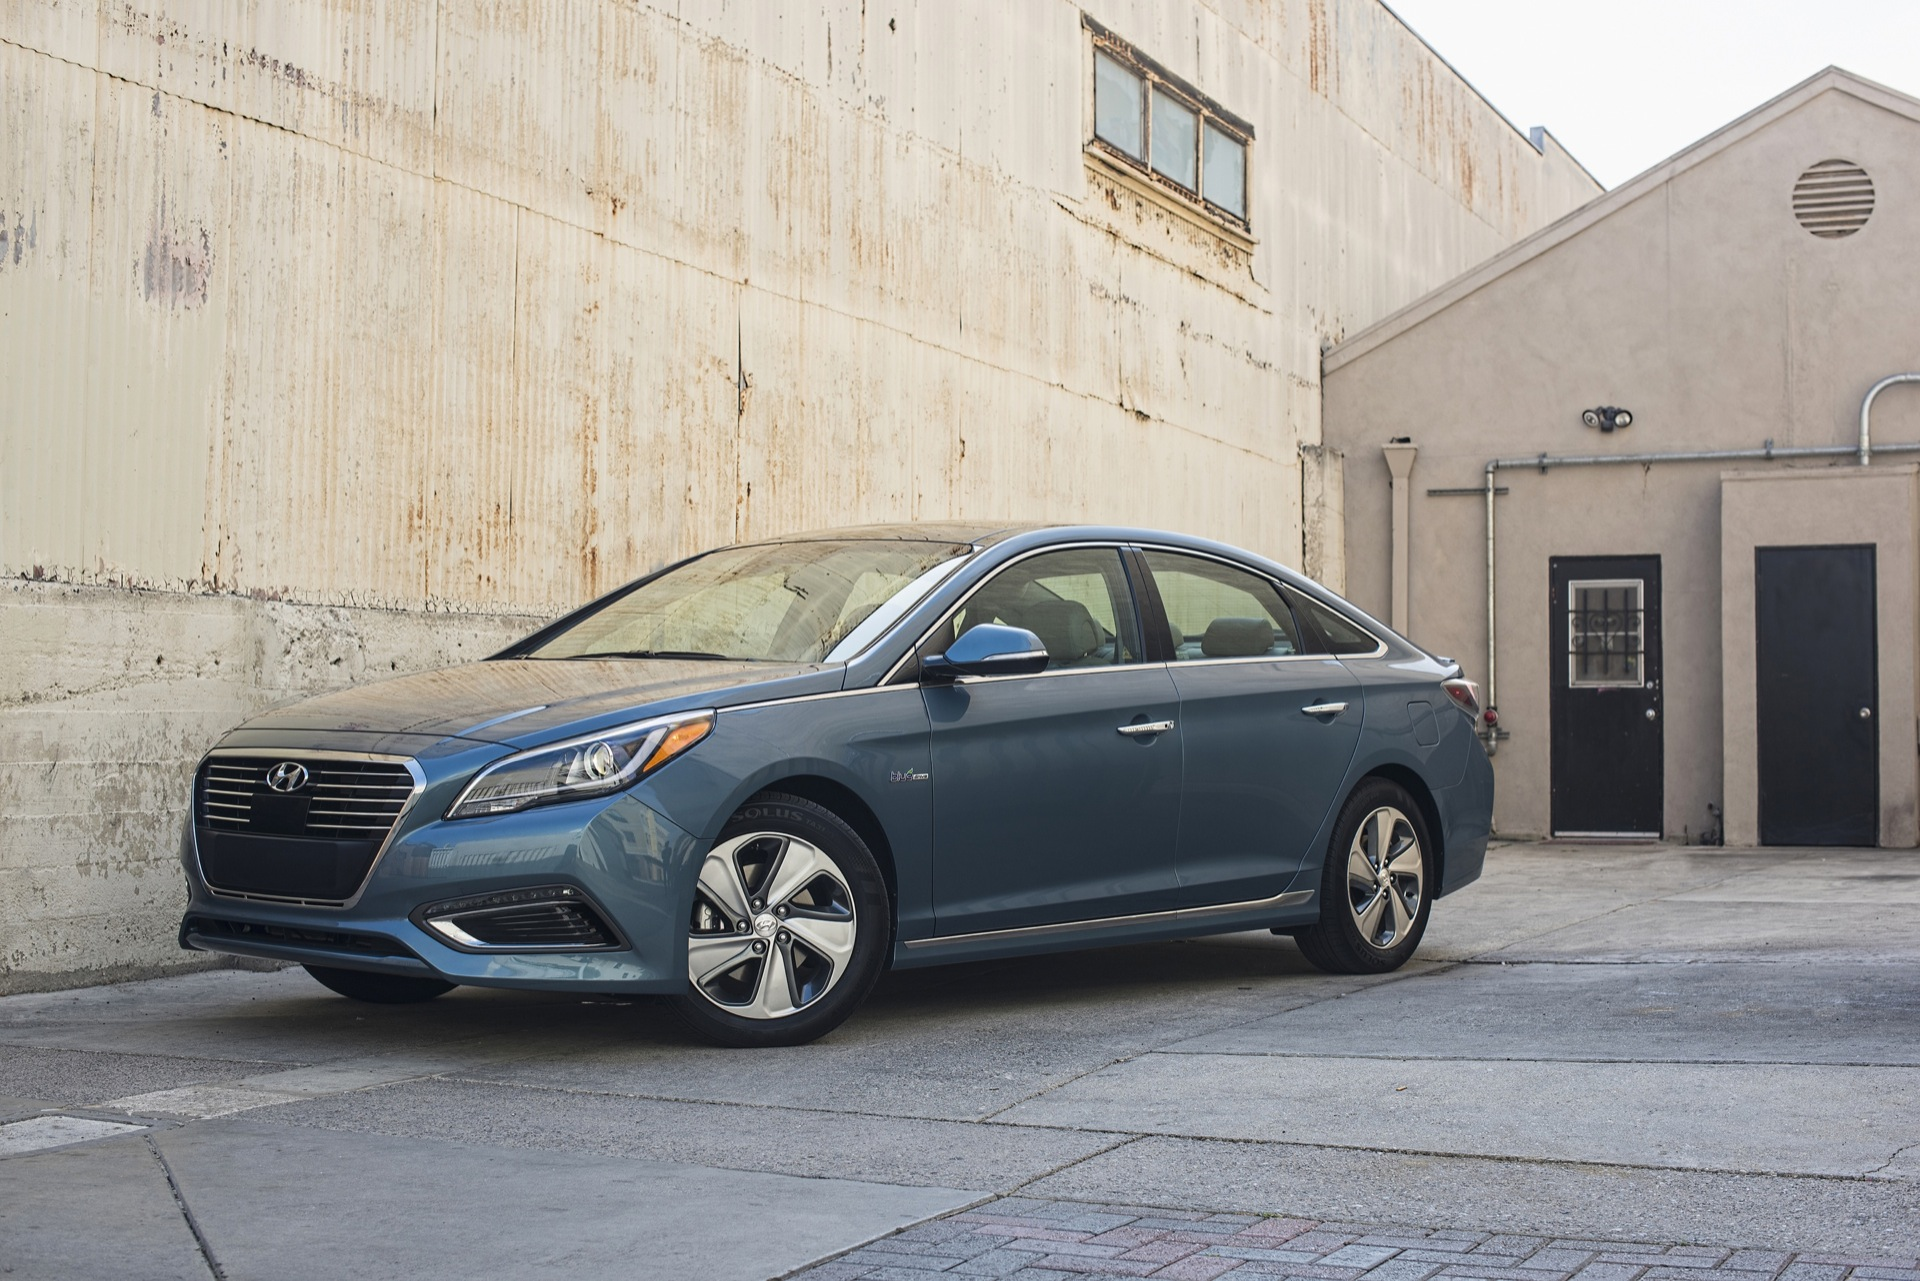 sipping sonata hauler with video fuel review hybrid interior hyundai family